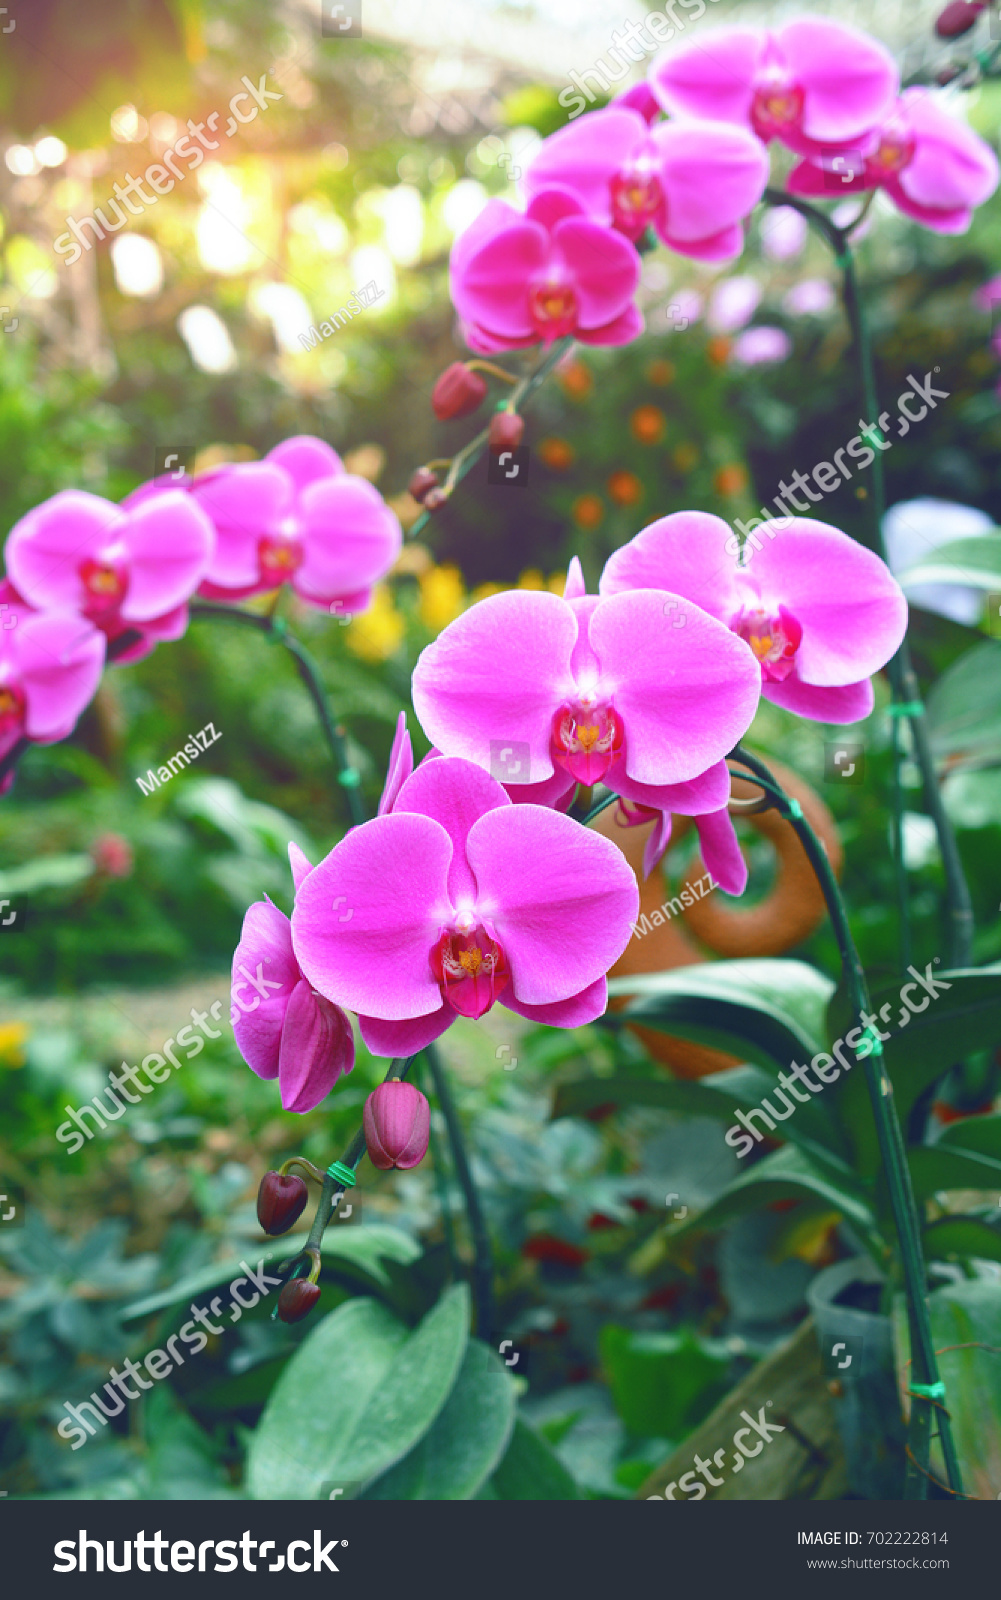 Beautiful orchid flowers growing garden stock photo 702222814 beautiful orchid flowers growing in the garden izmirmasajfo